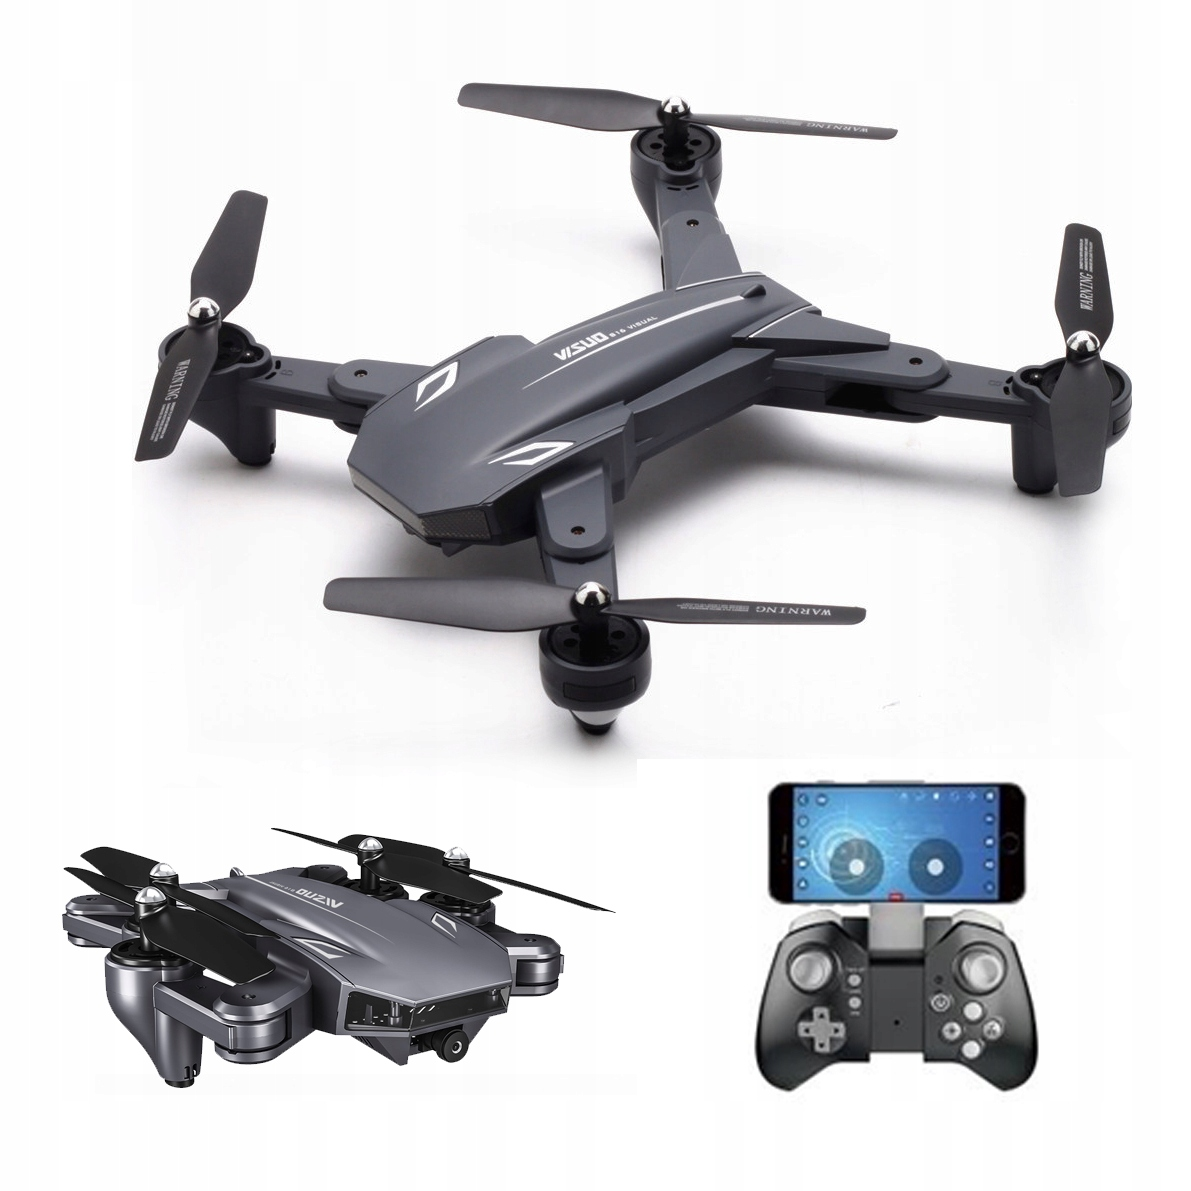 Item DRONE VISUO XS816 SHARK WITH A 4K UHD CAMERA AND A GREAT BATTERY